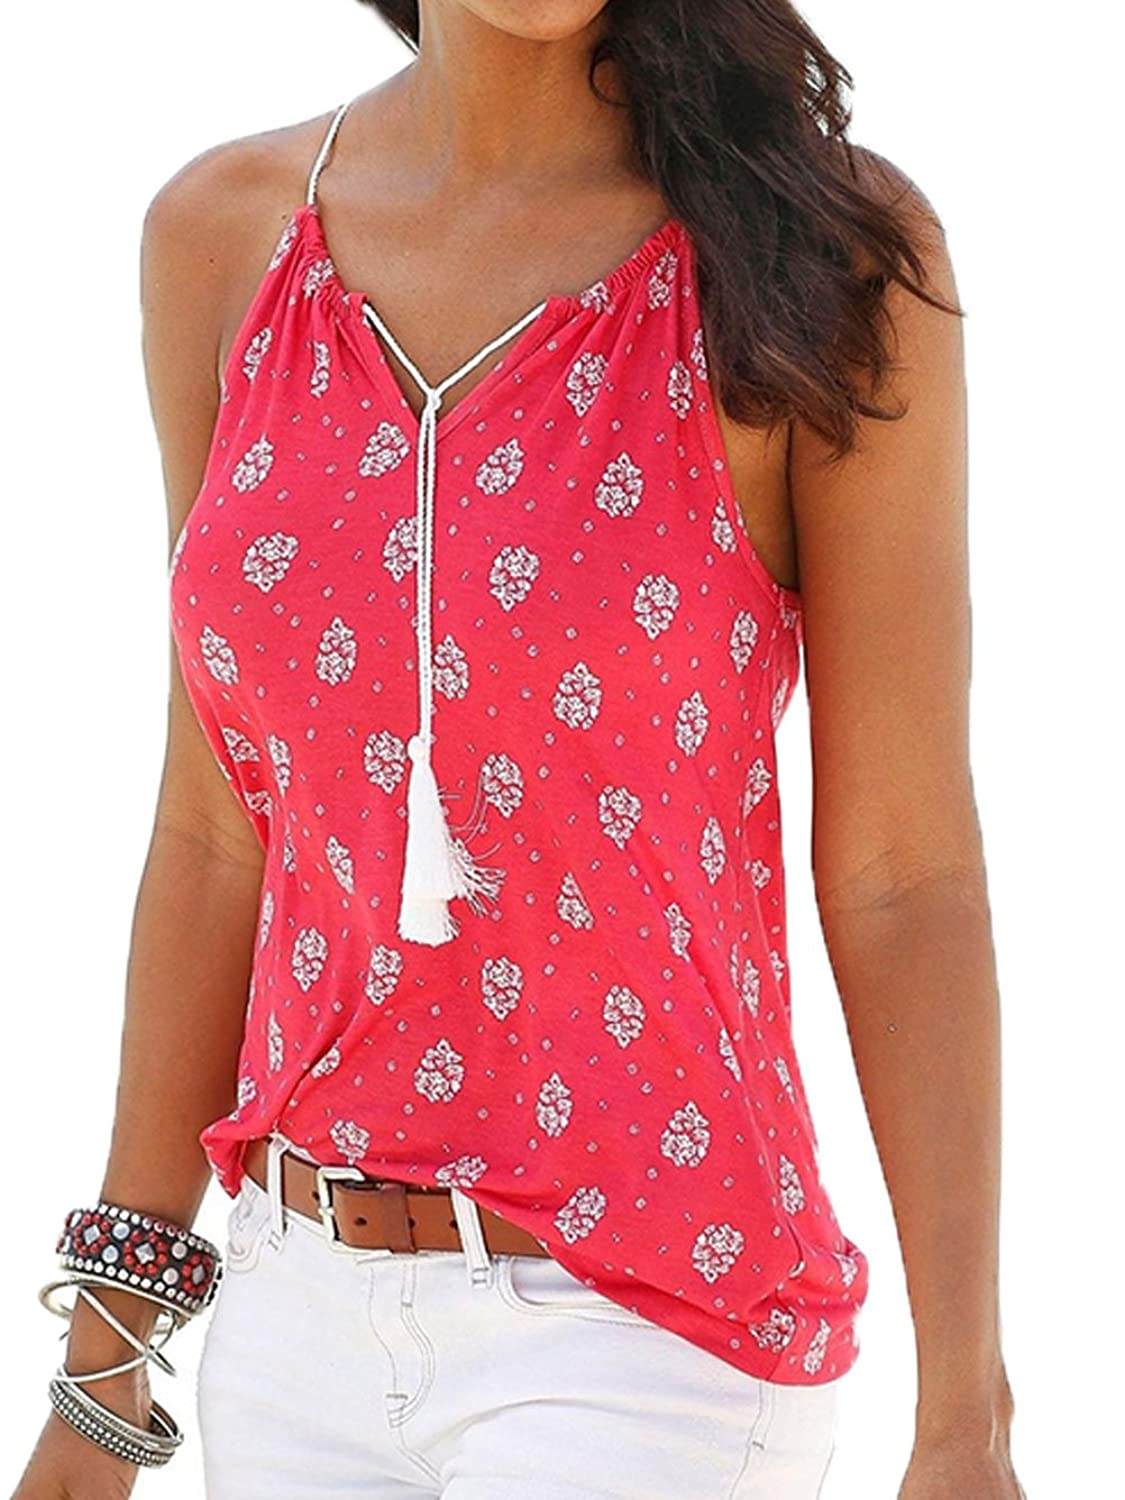 Famulily Women's Print Sleeveless Spaghetti Strap Tank Tops Camisole Vest